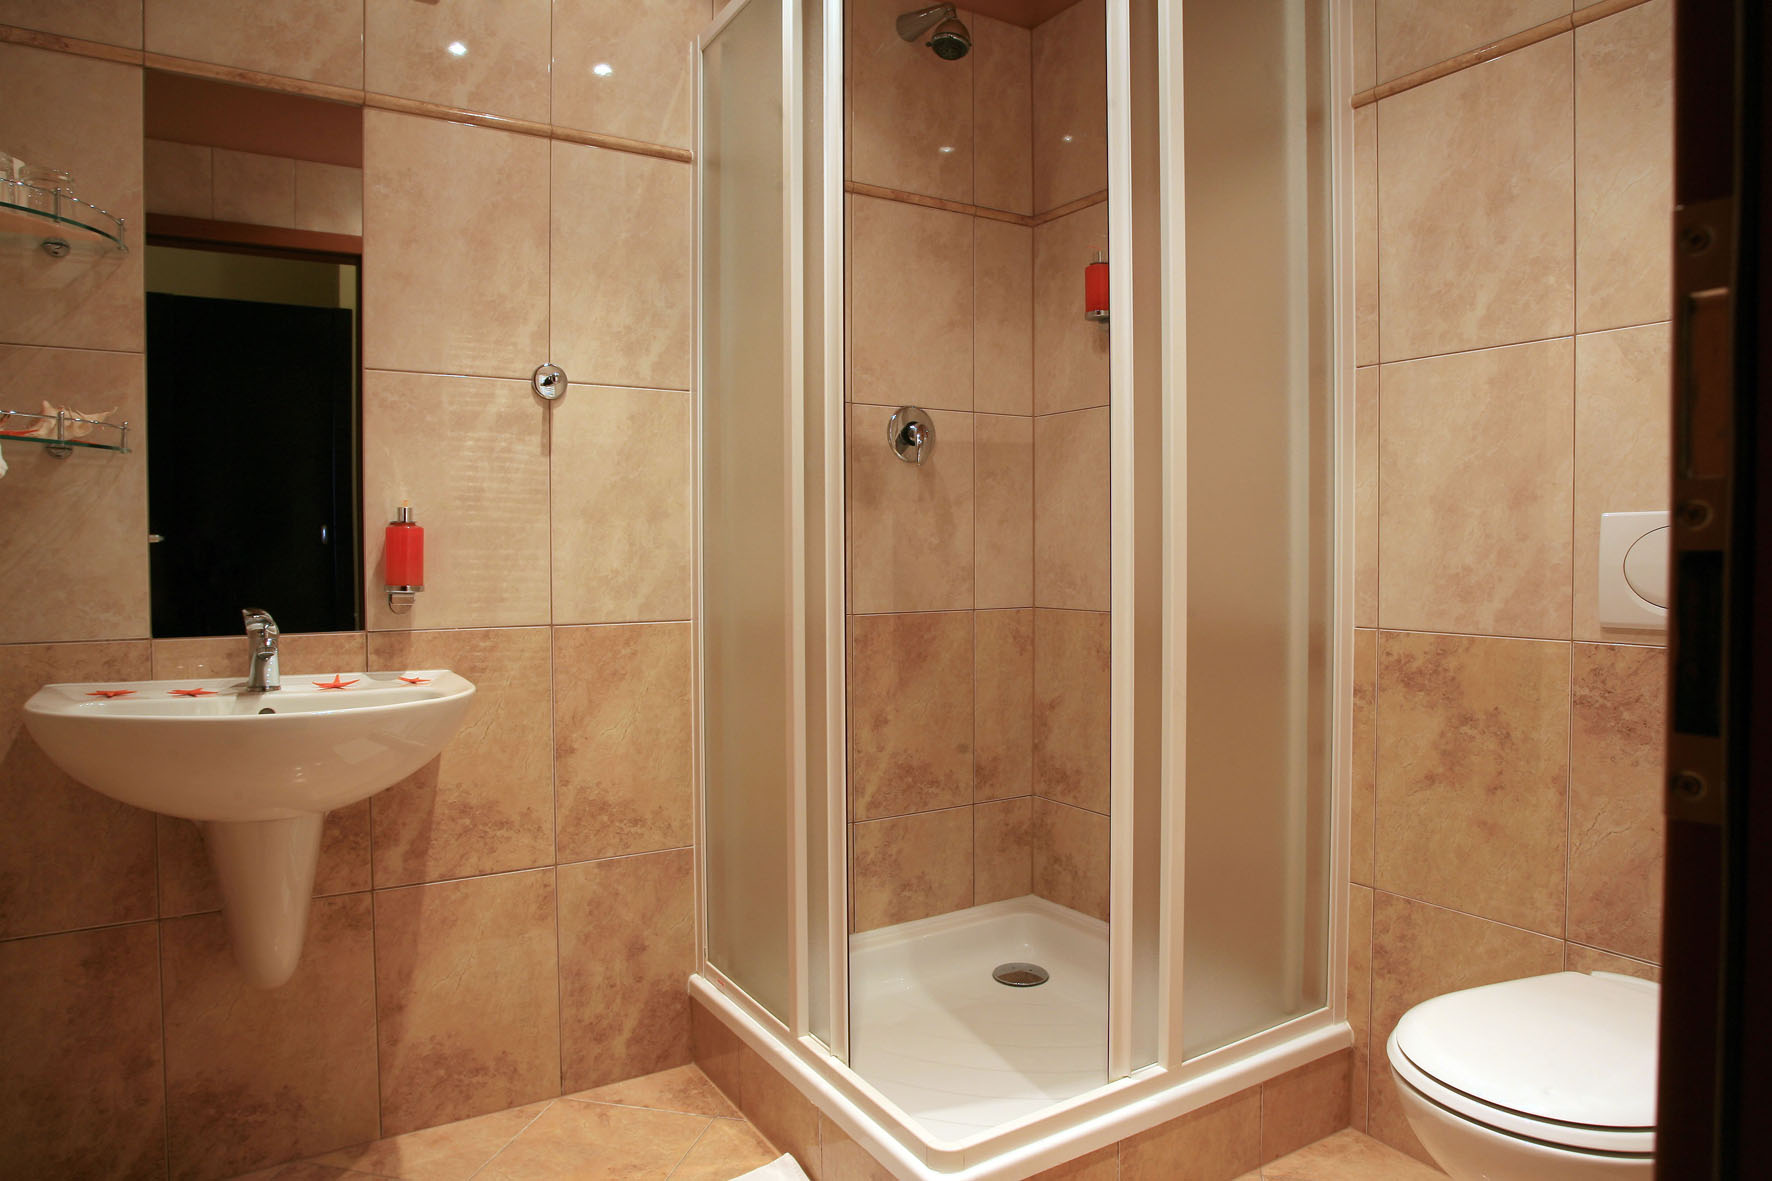 Bathrooms designs Photo - 1